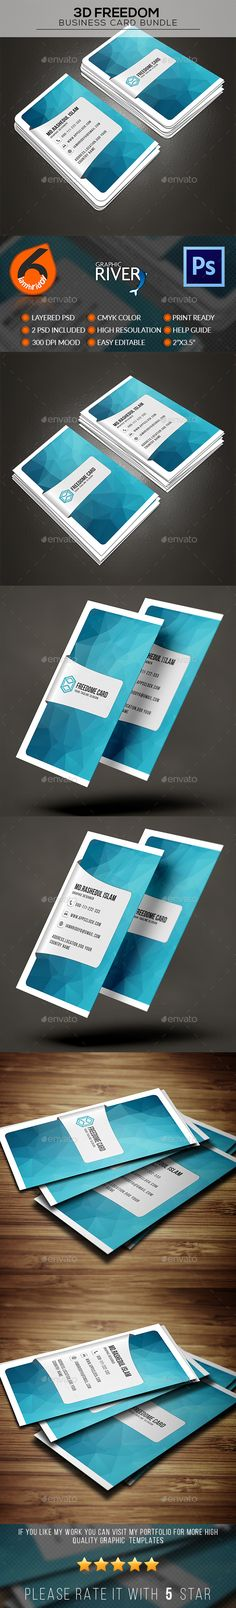 3D Freedom Business Card Design Template - Business Cards Print Template PSD. Download here: https://graphicriver.net/item/3d-freedom-business-card/17042849?s_rank=228&ref=yinkira